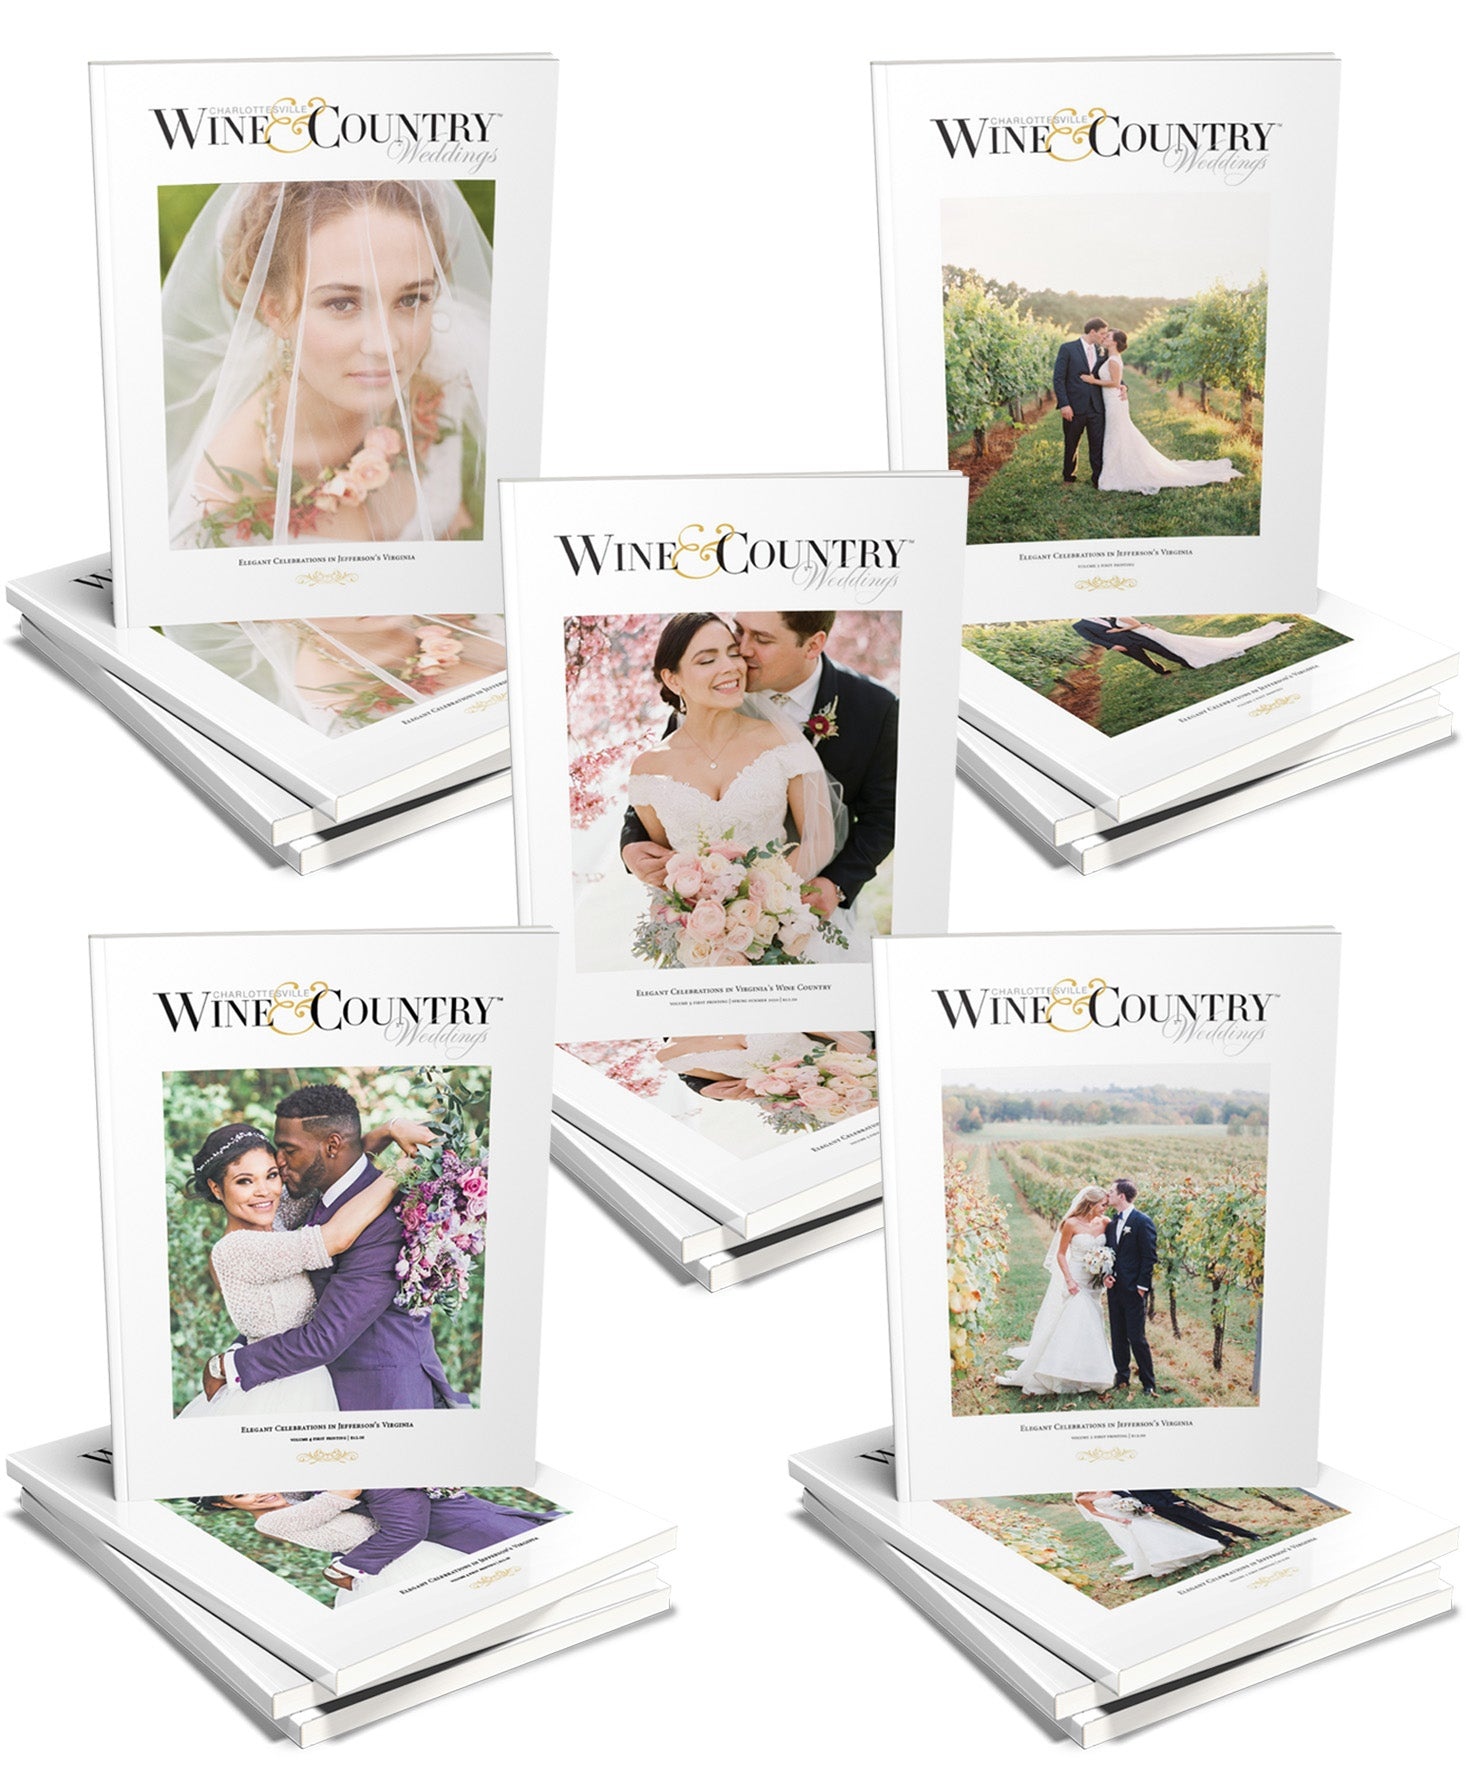 W&C Weddings PRINT Collection Volumes 1 - 5